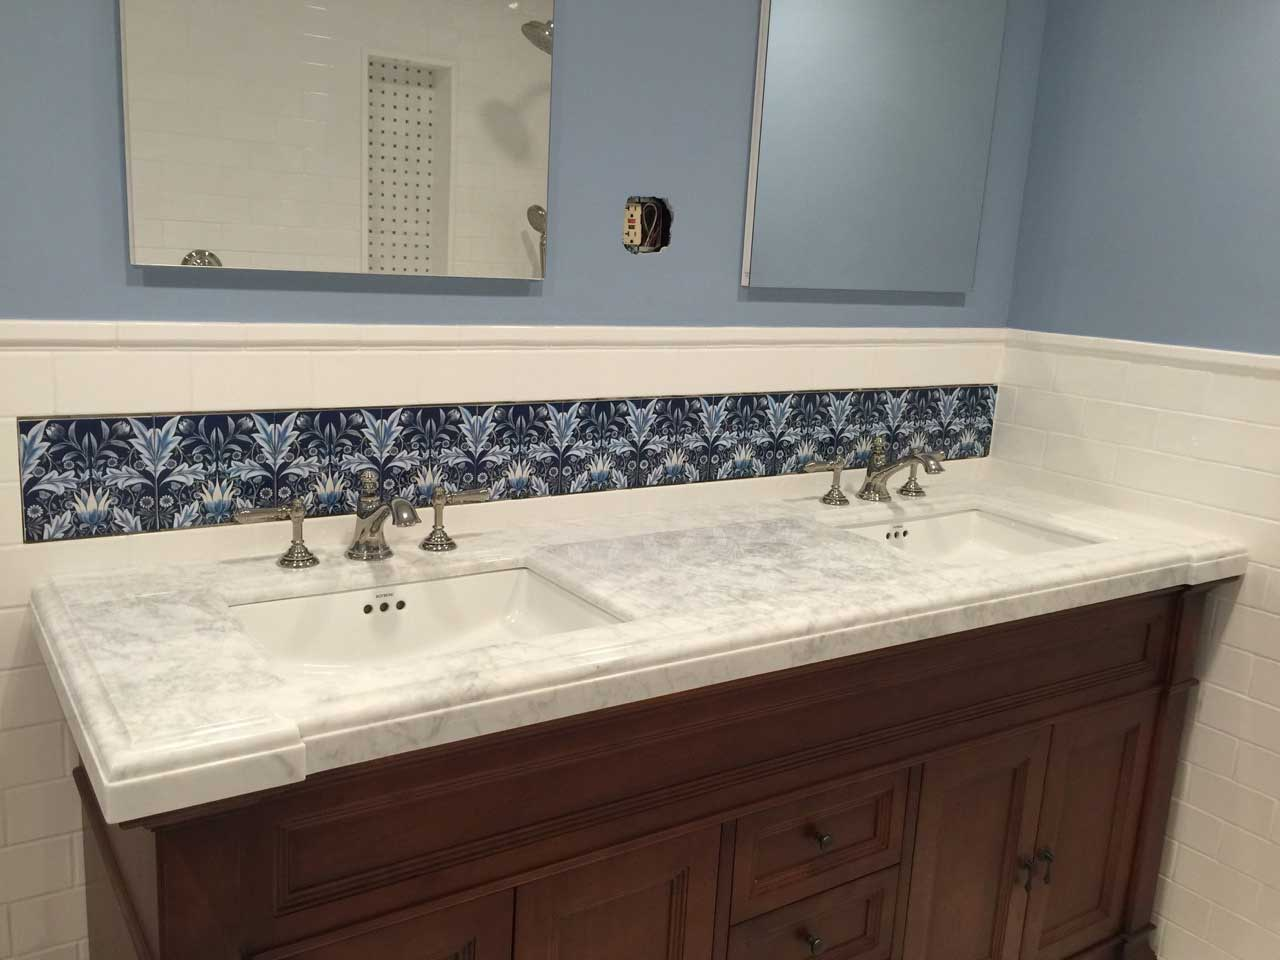 Membland Accent Tiles over sink in Brooklyn, New York.  Design by Barbara Cannizzaro of Josephine Design. Tile by WilliamMorrisTile.com